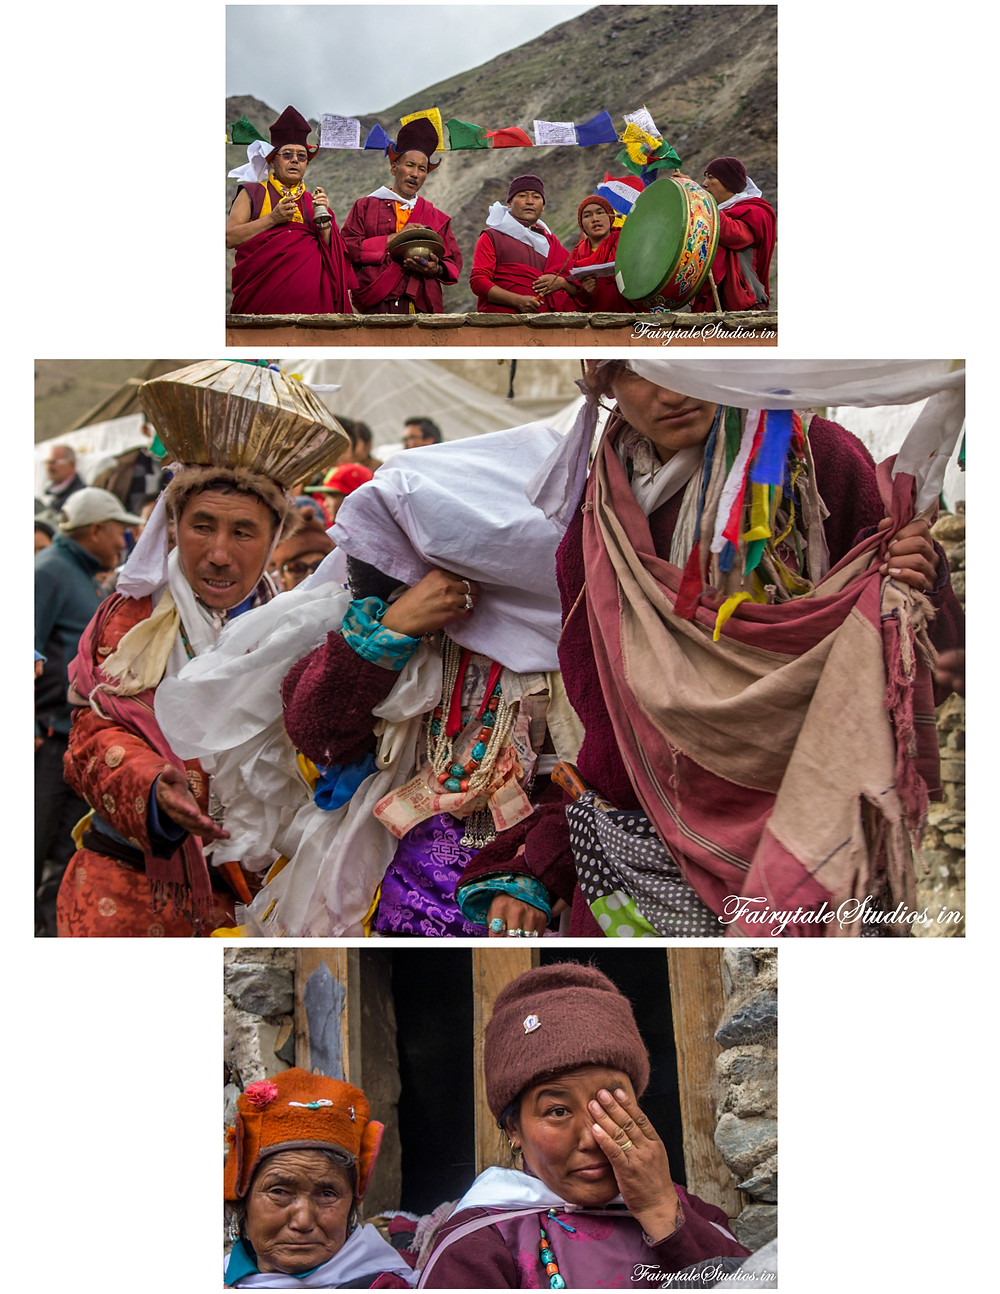 Men from groom's side take the bride as monks watch and women cry (The Zanskar Odyssey Travelogue)